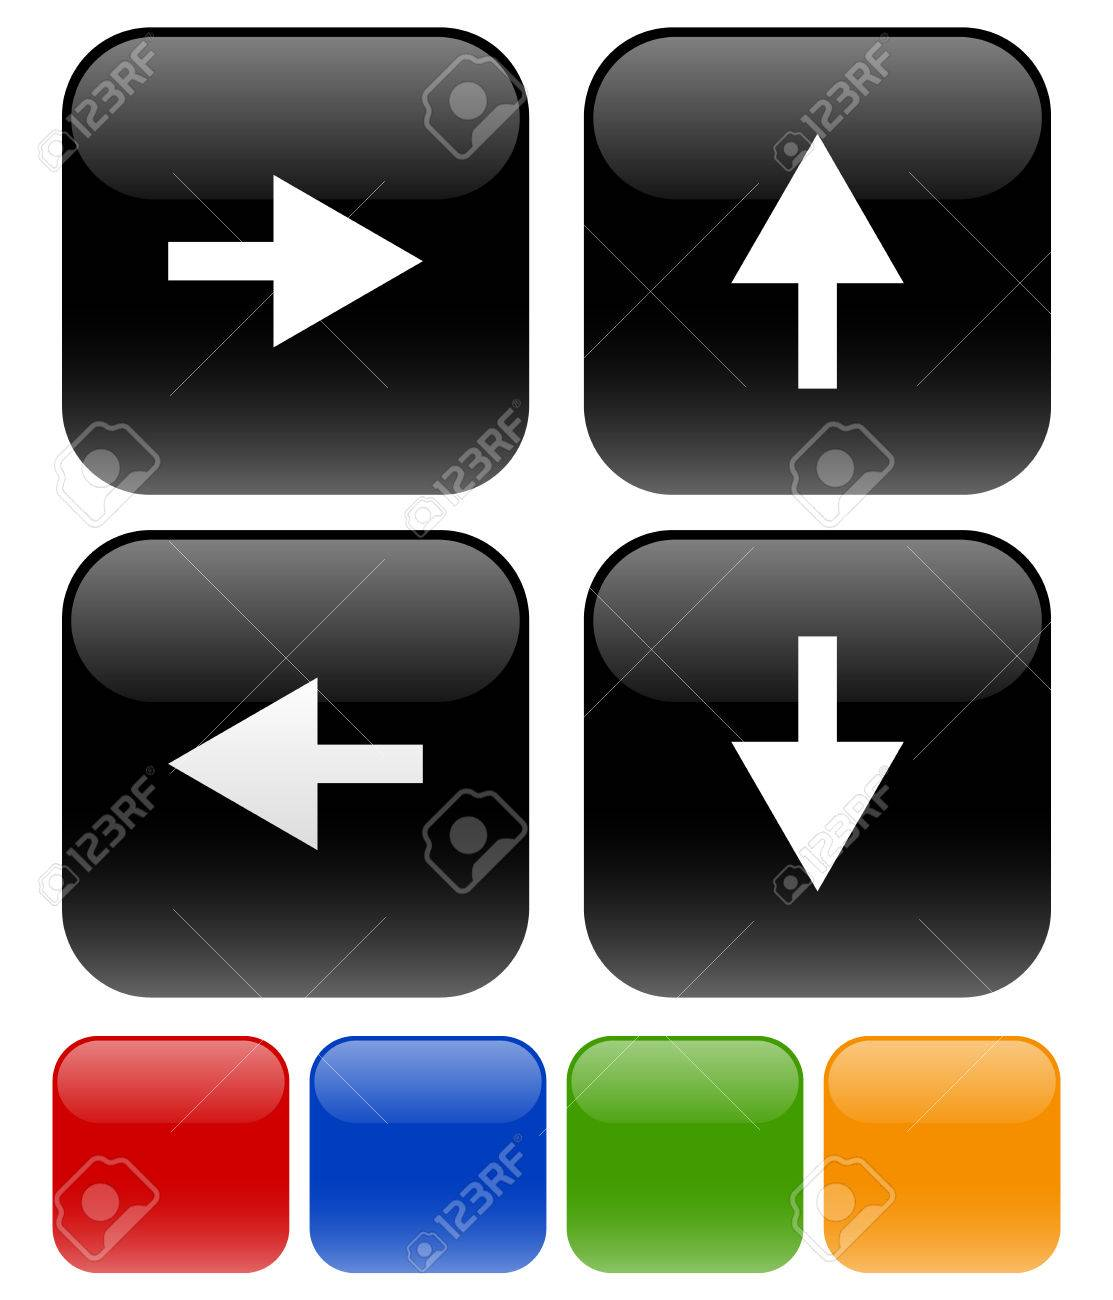 Vector Illustration Of Icons With Arrow Symbols On Rounded Squares